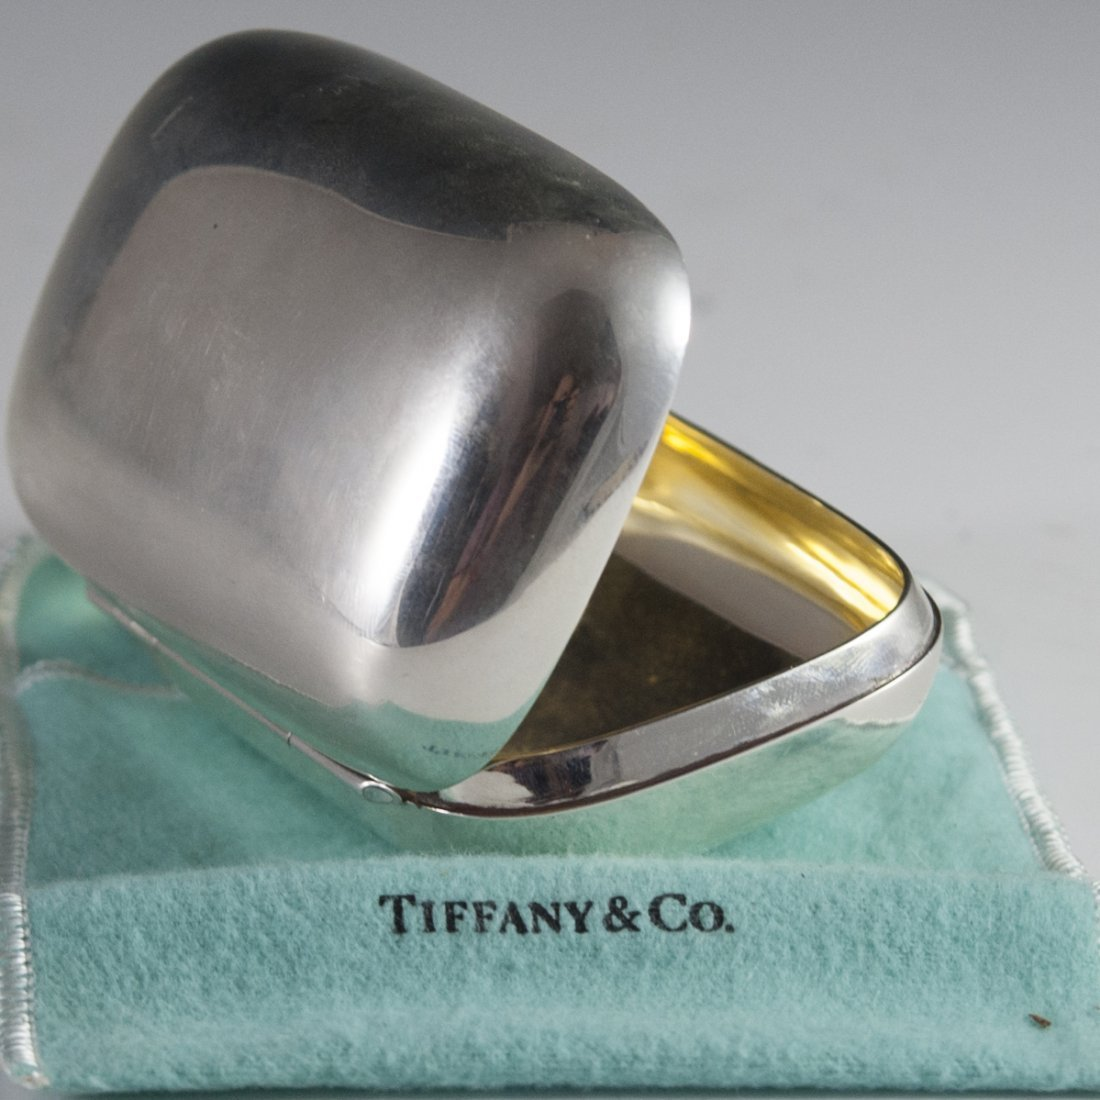 Tiffany & Co. Makers Sterling Pill Box